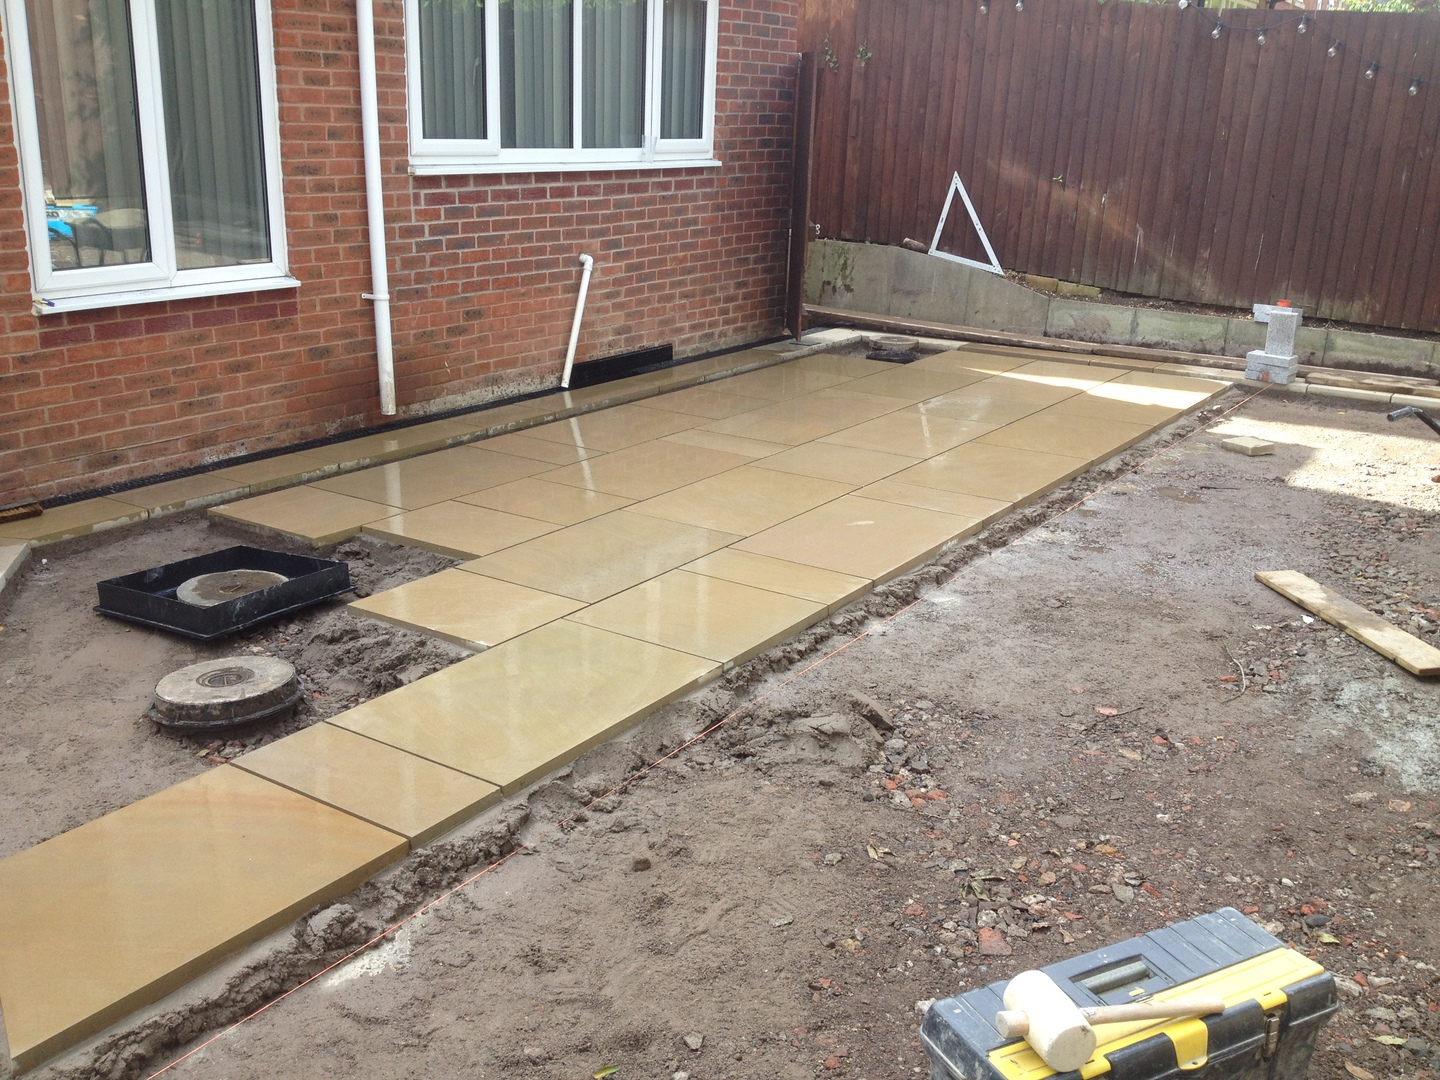 York stone patio during construction in Cheshire